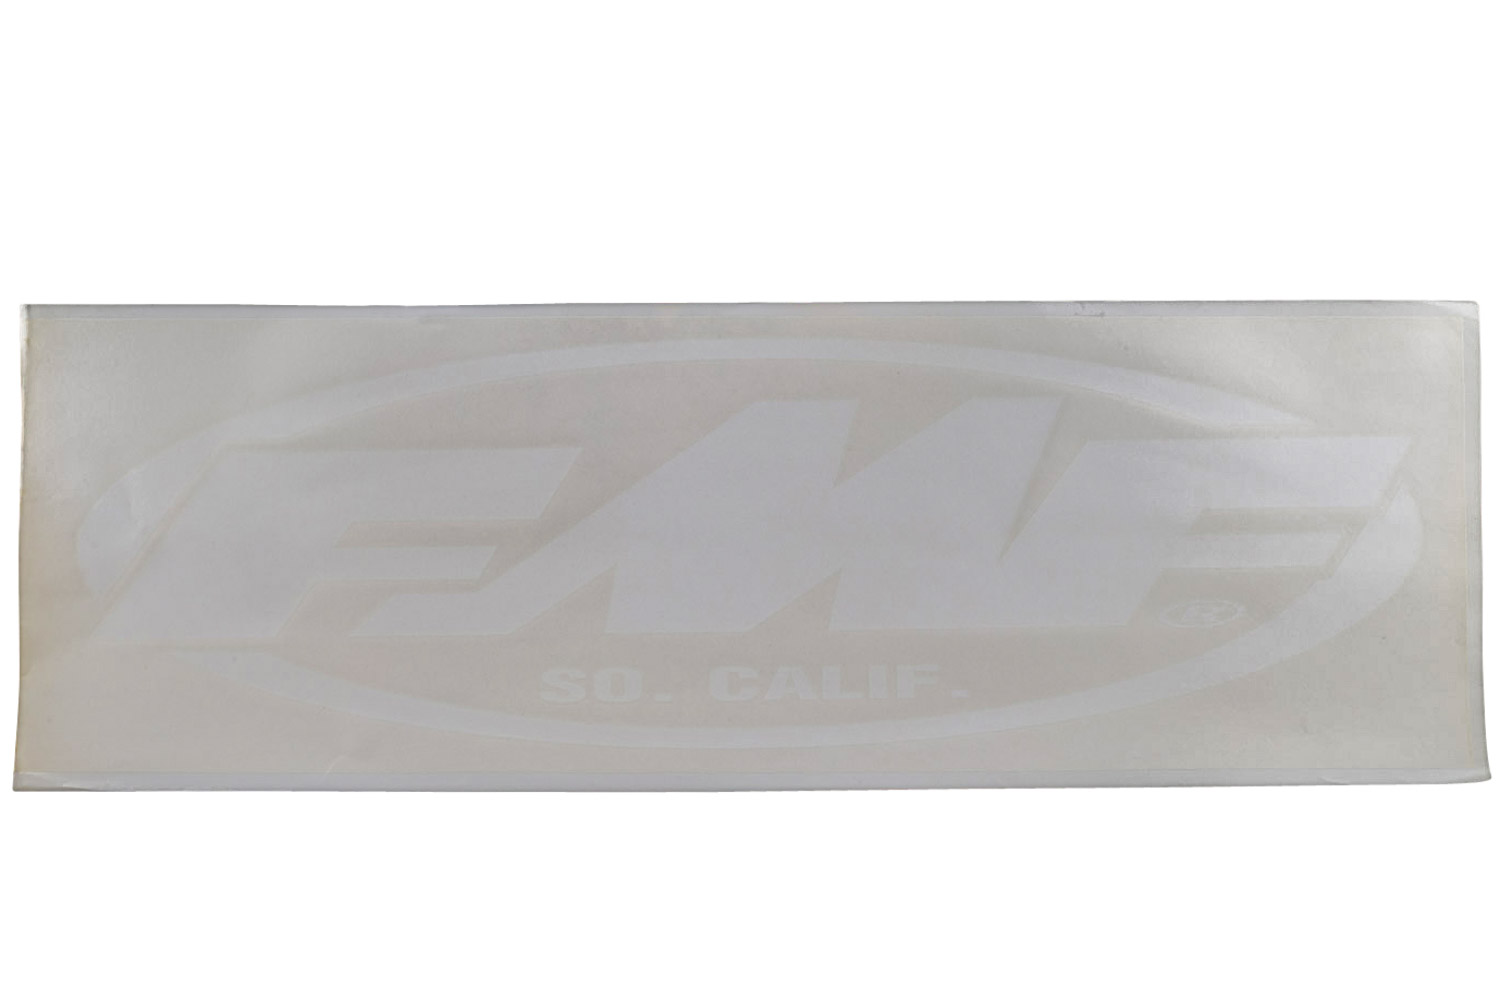 "FMF 10"" X 33"" OVAL DIE CUT STKR (WHITE) (011295)"